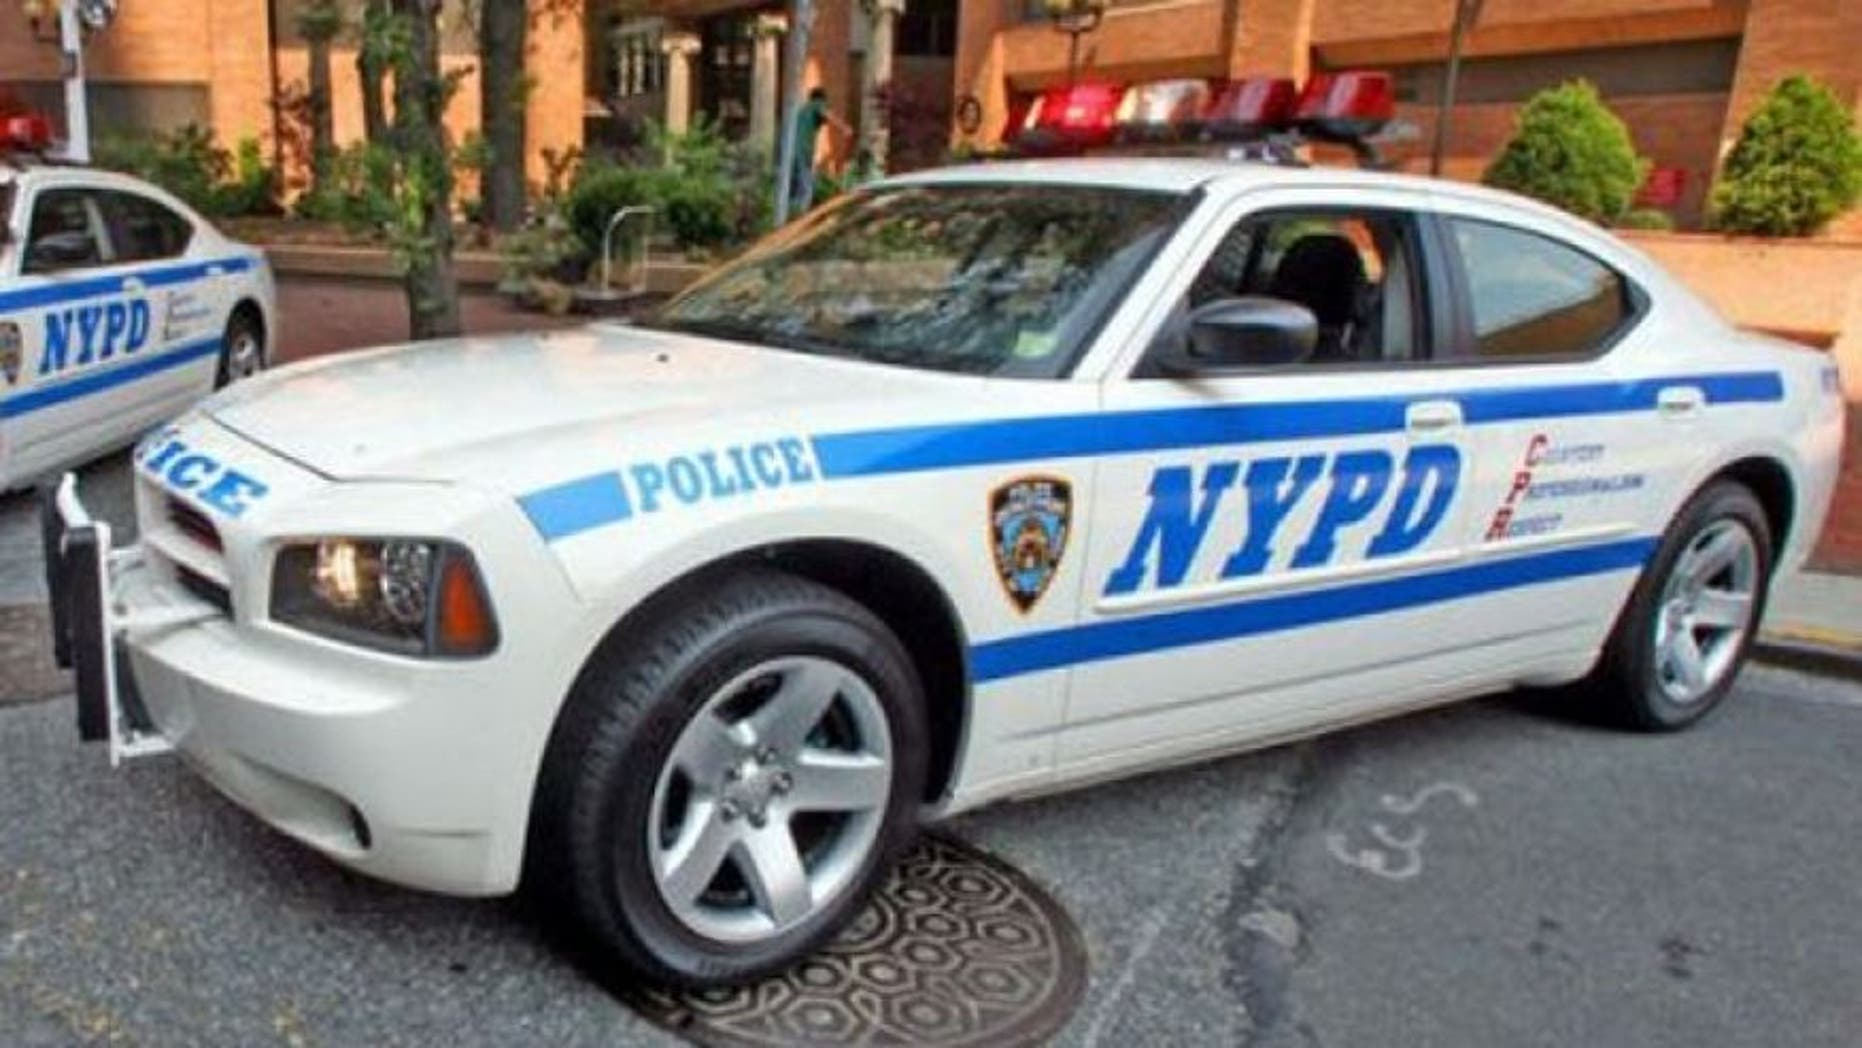 This undated photo shows an NYPD police car